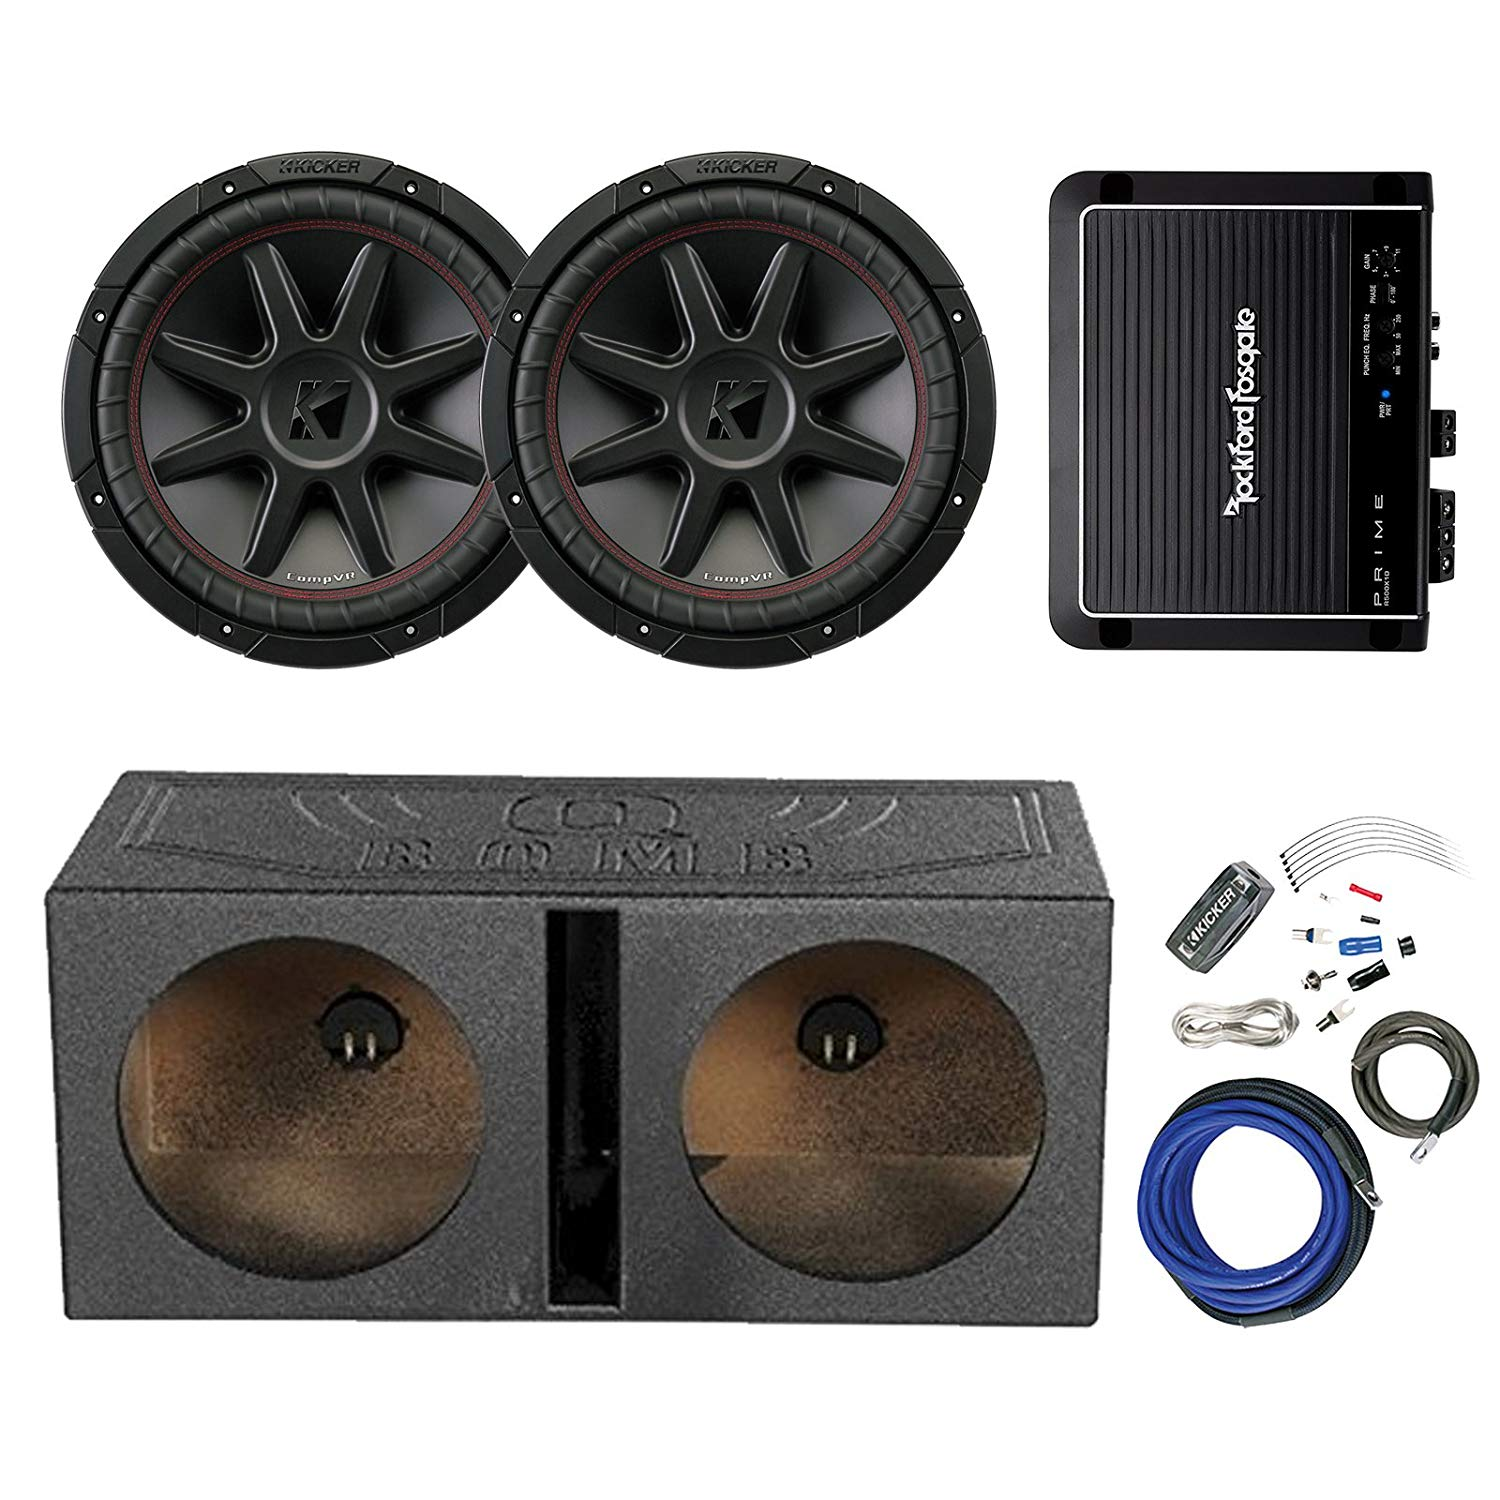 Cheap 8 Ohm Subwoofer Wiring Find Deals On How To Wire 4 Dual Voice Coil Subs Harness Get Quotations 2x Kicker 12 800 Watt Car Audio And Qpower Qbomb12v